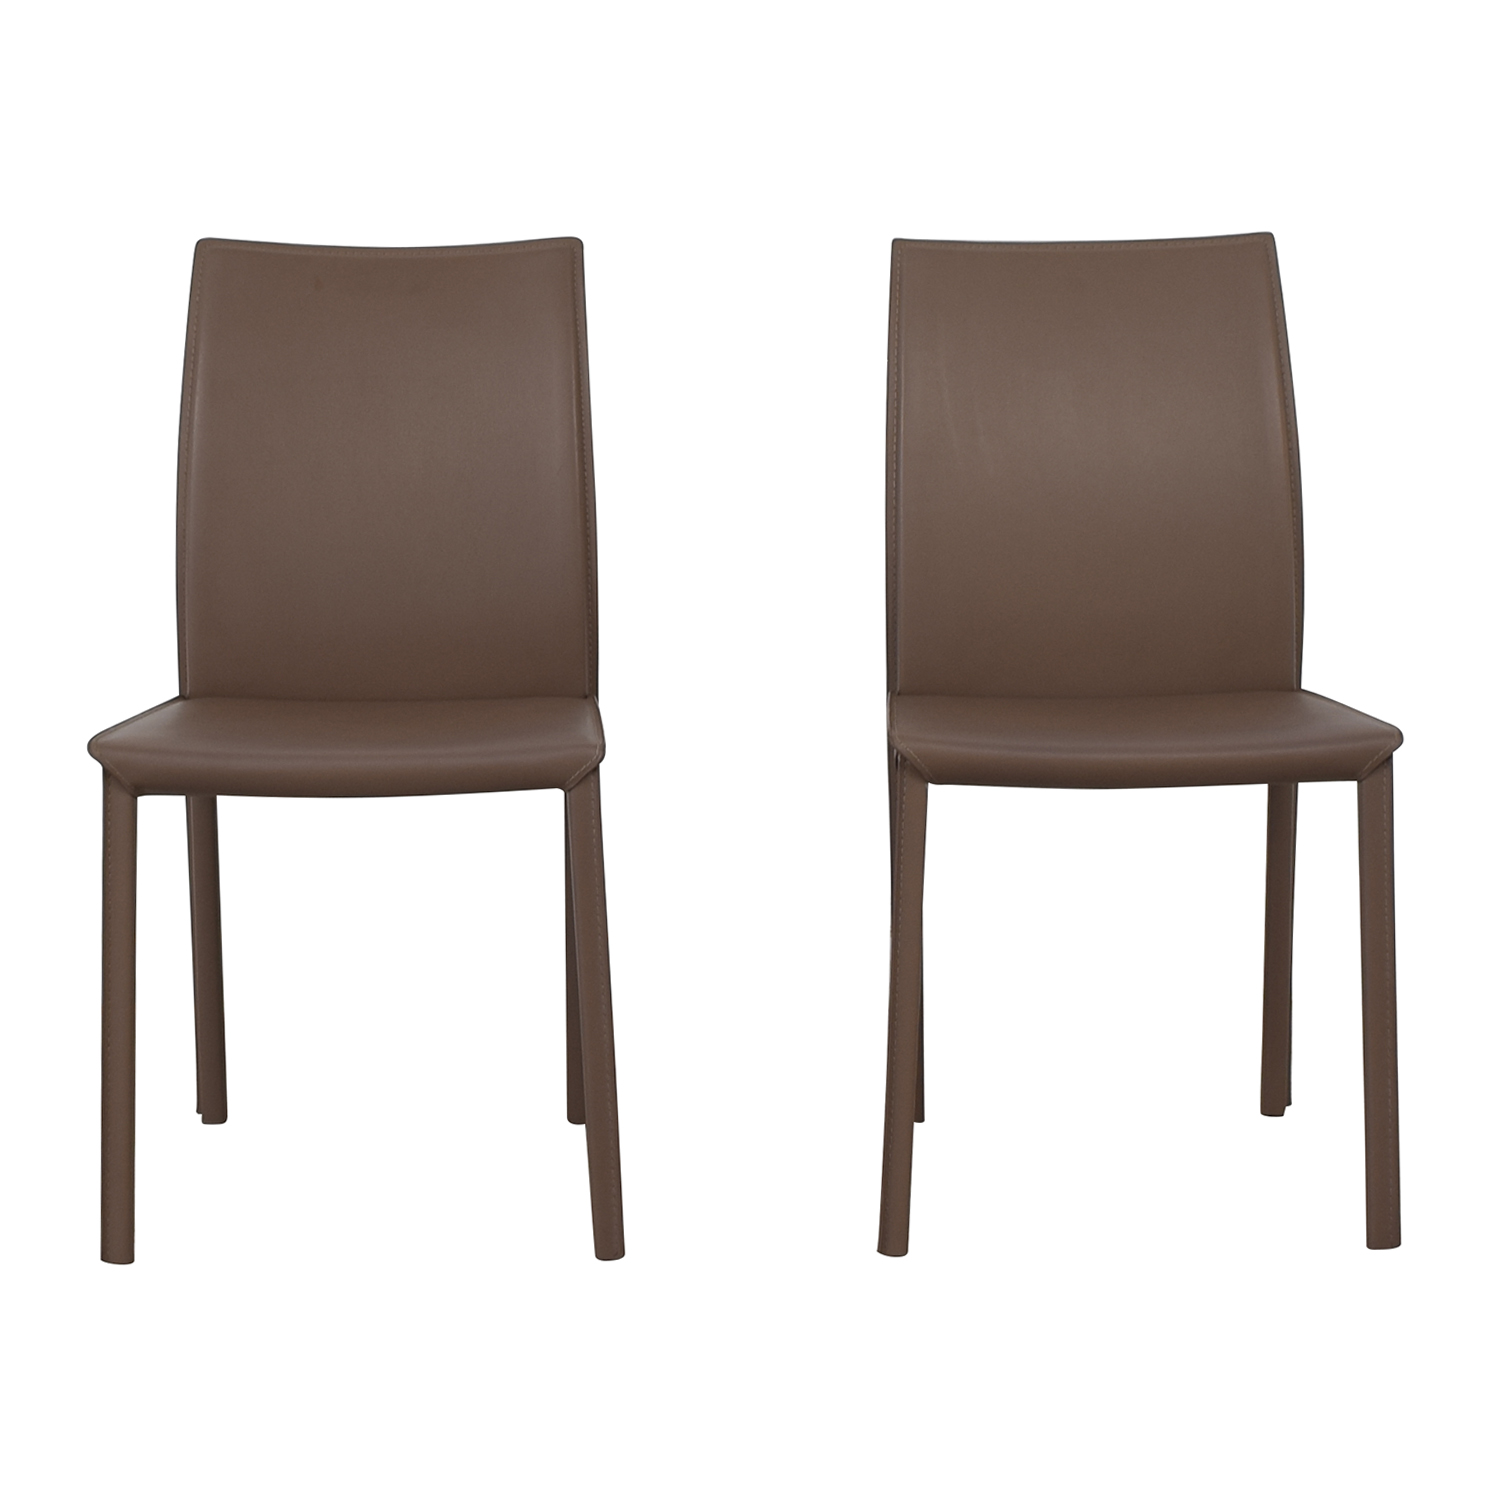 BoConcept BoConcept Dining chairs Dining Chairs